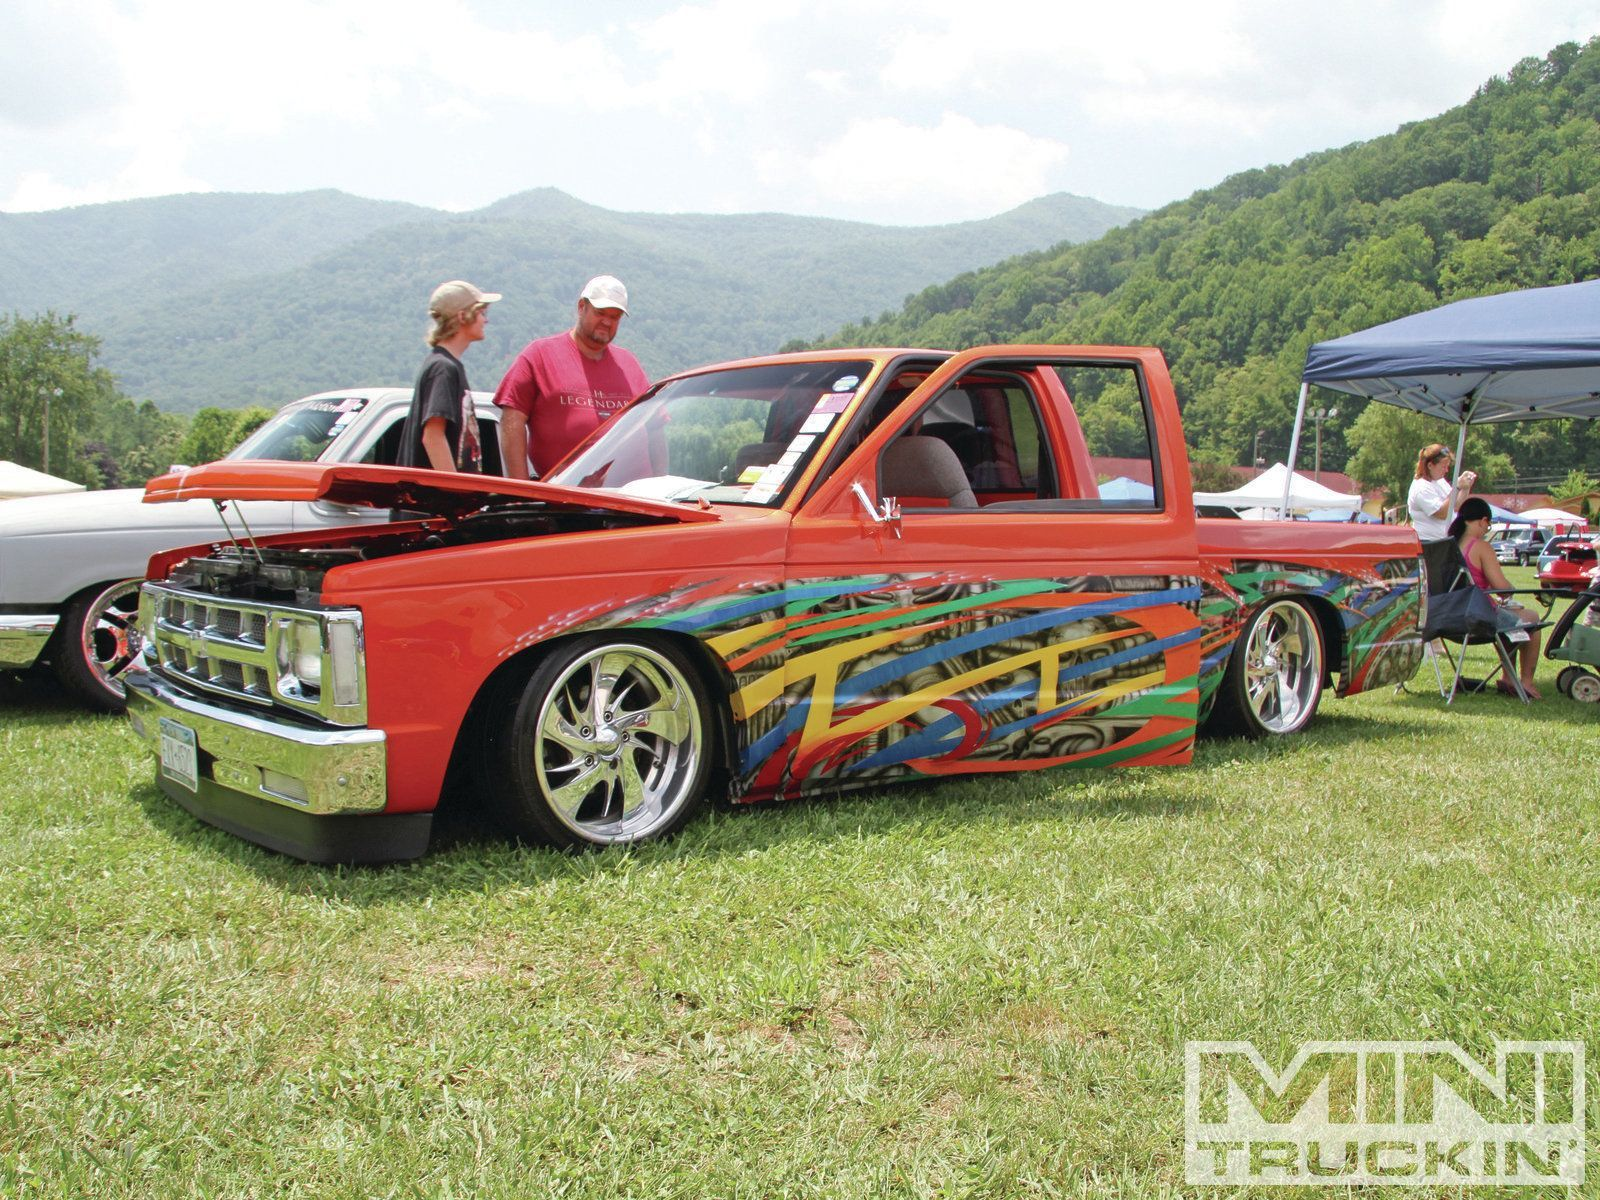 2010 southeast minitruckin nationals custom truck shows mini truckin magazine